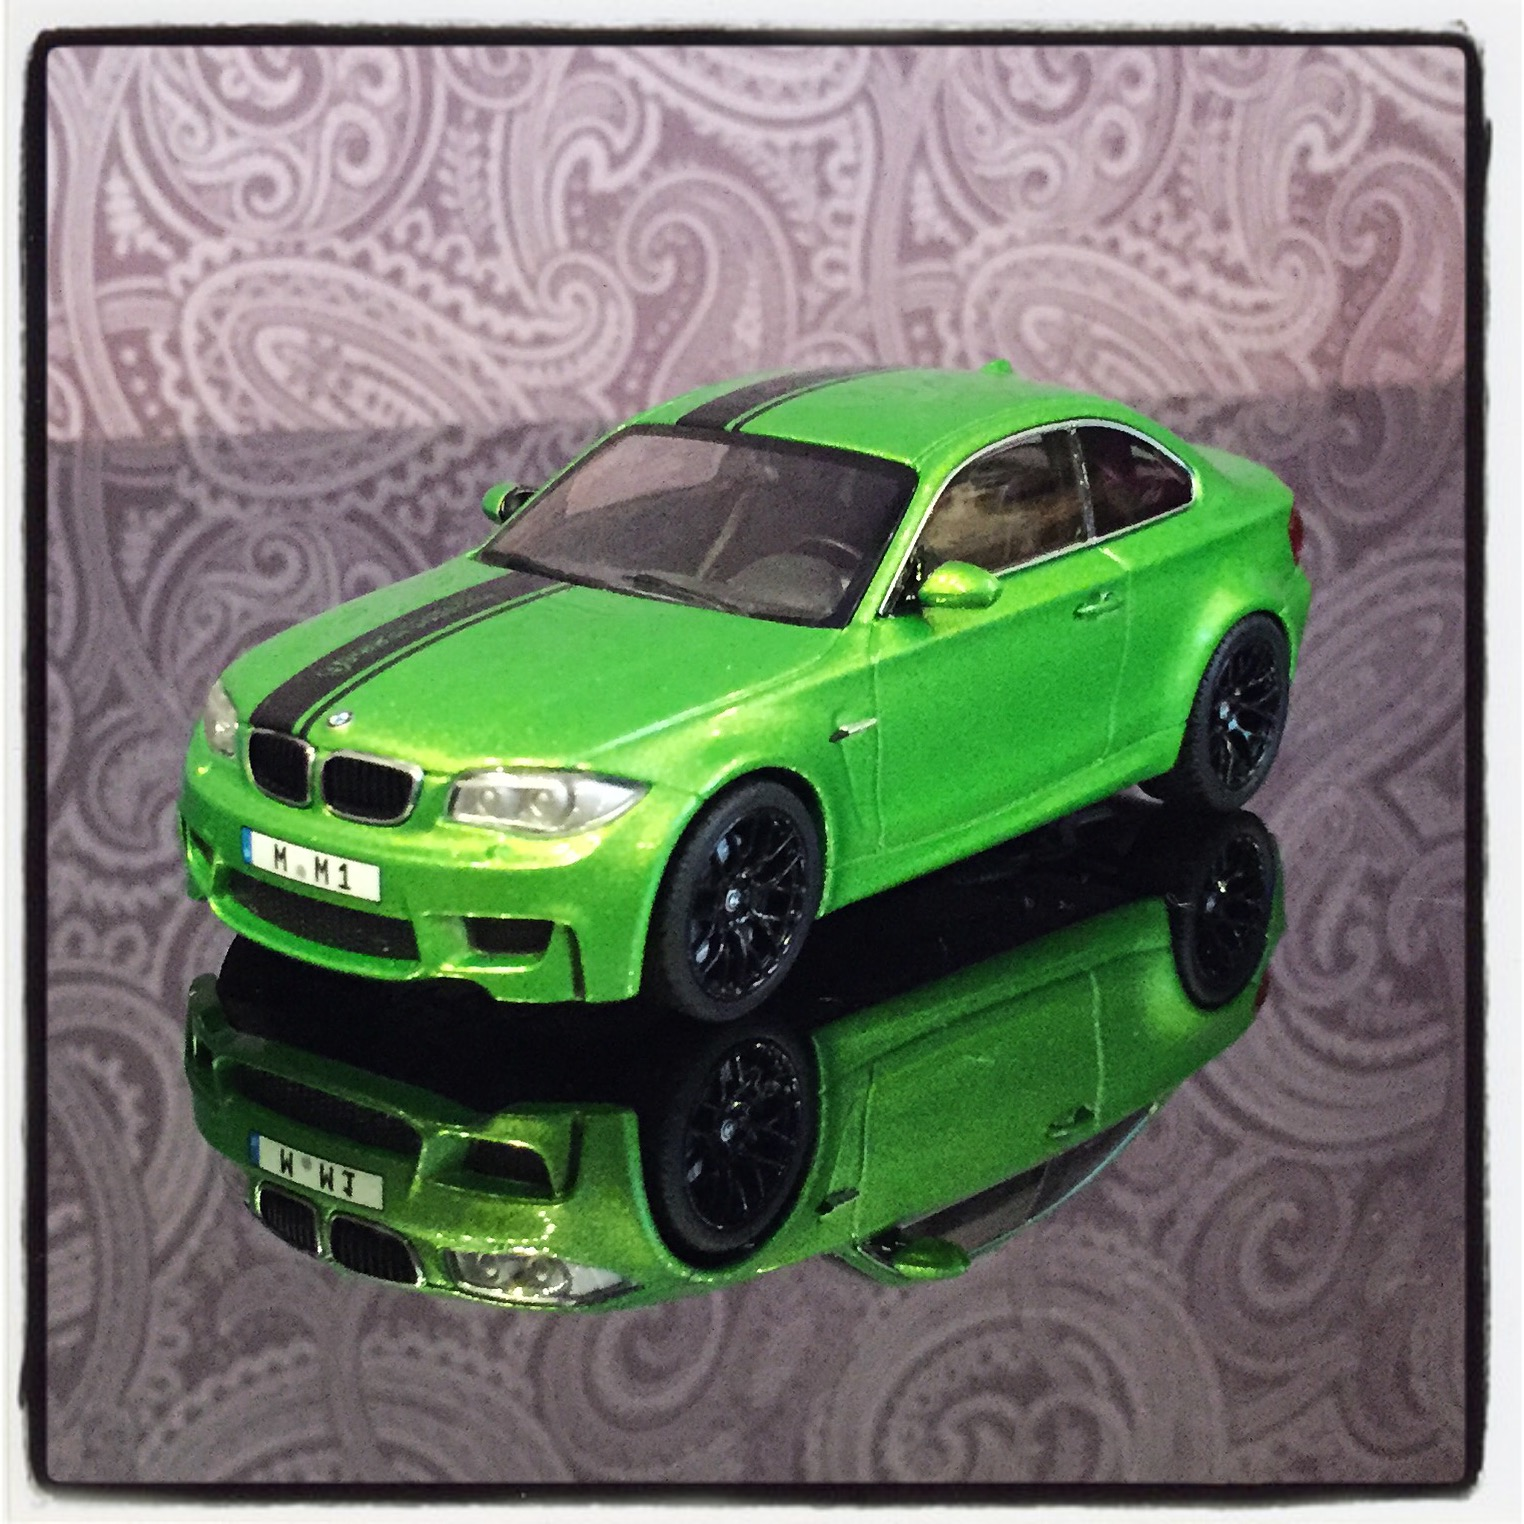 BMW 1M coupe (E82) 2011, Java green, le 1 of 528pcs. (Minichamps)